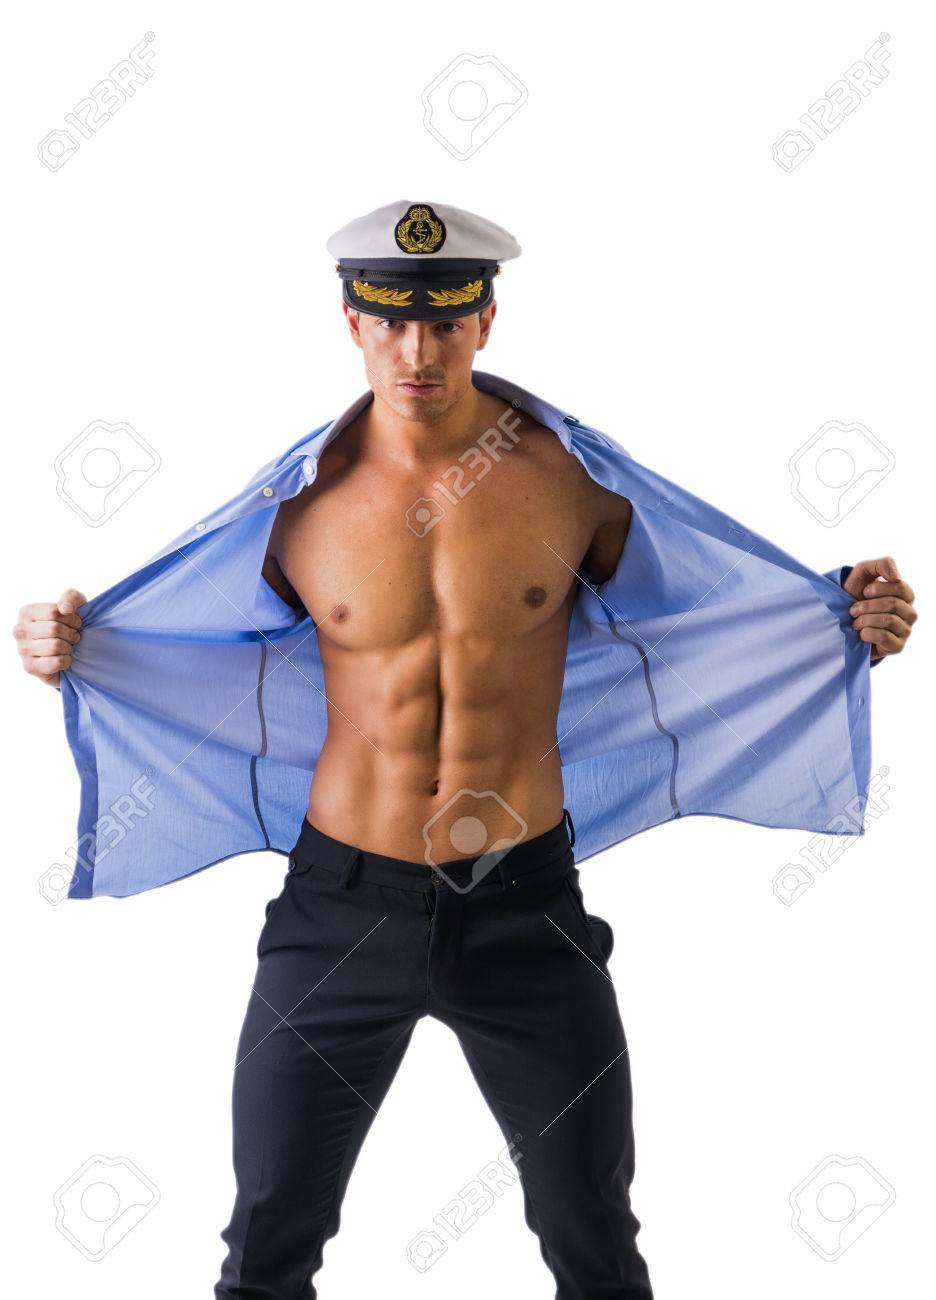 Muscular Male Sailor With Open Shirt On Muscle Torso Wearing